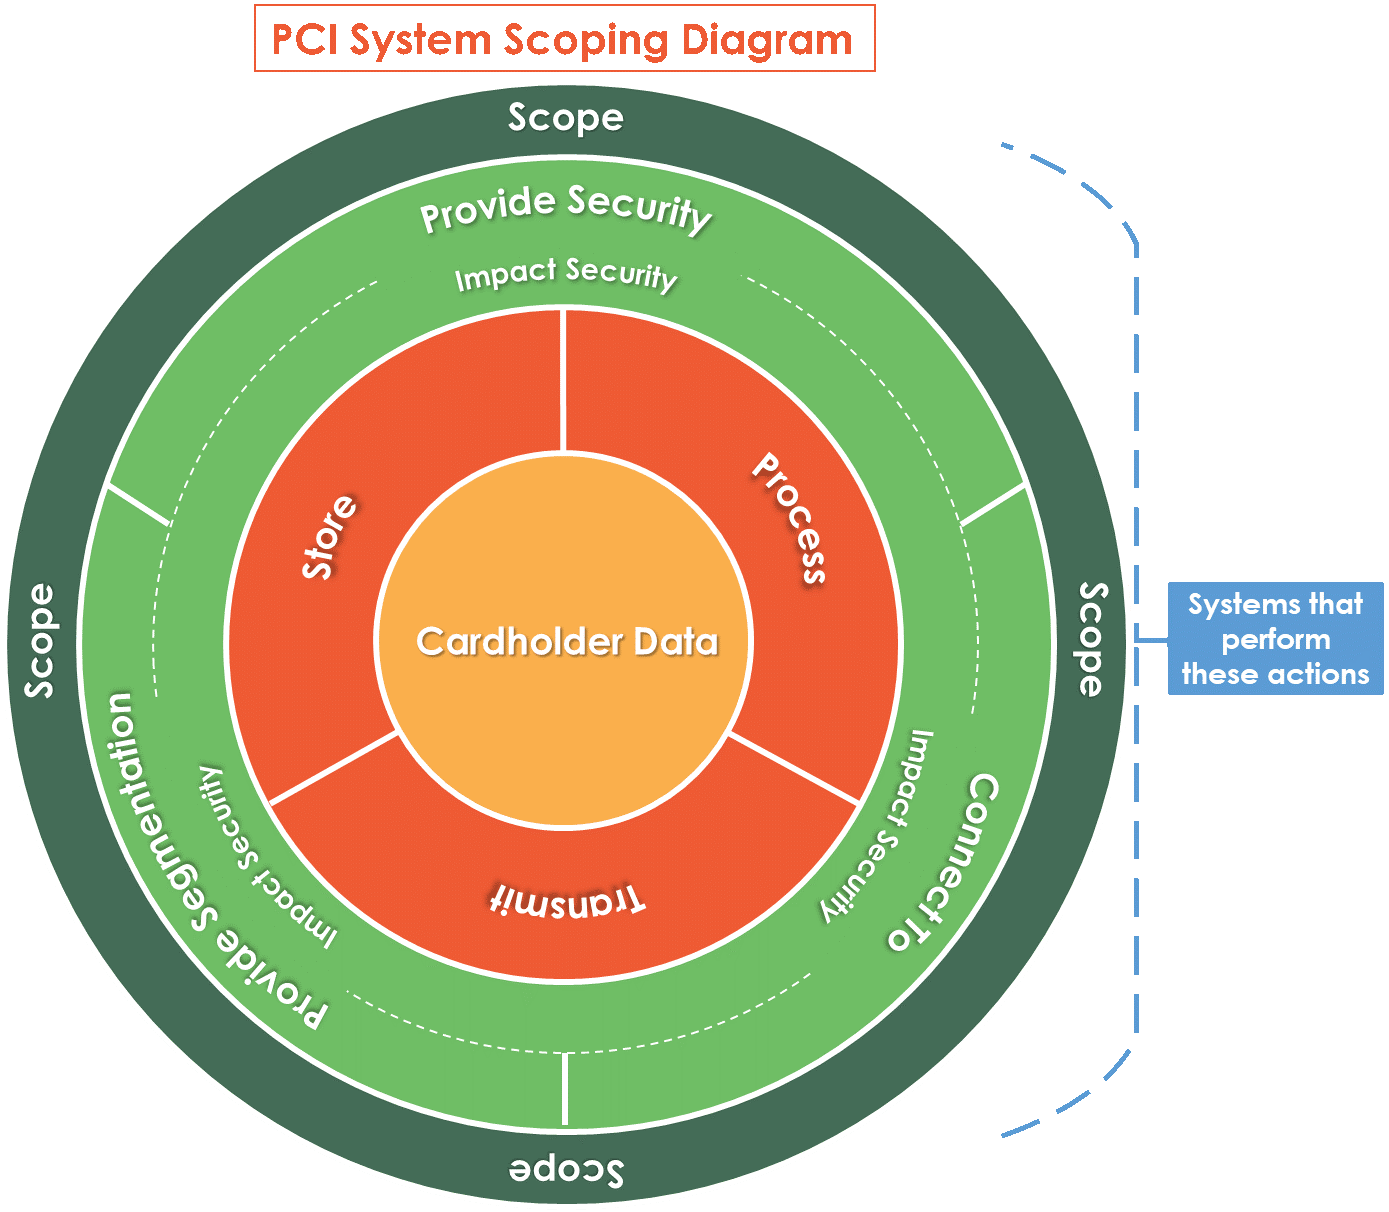 PCI System Scoping Diagram